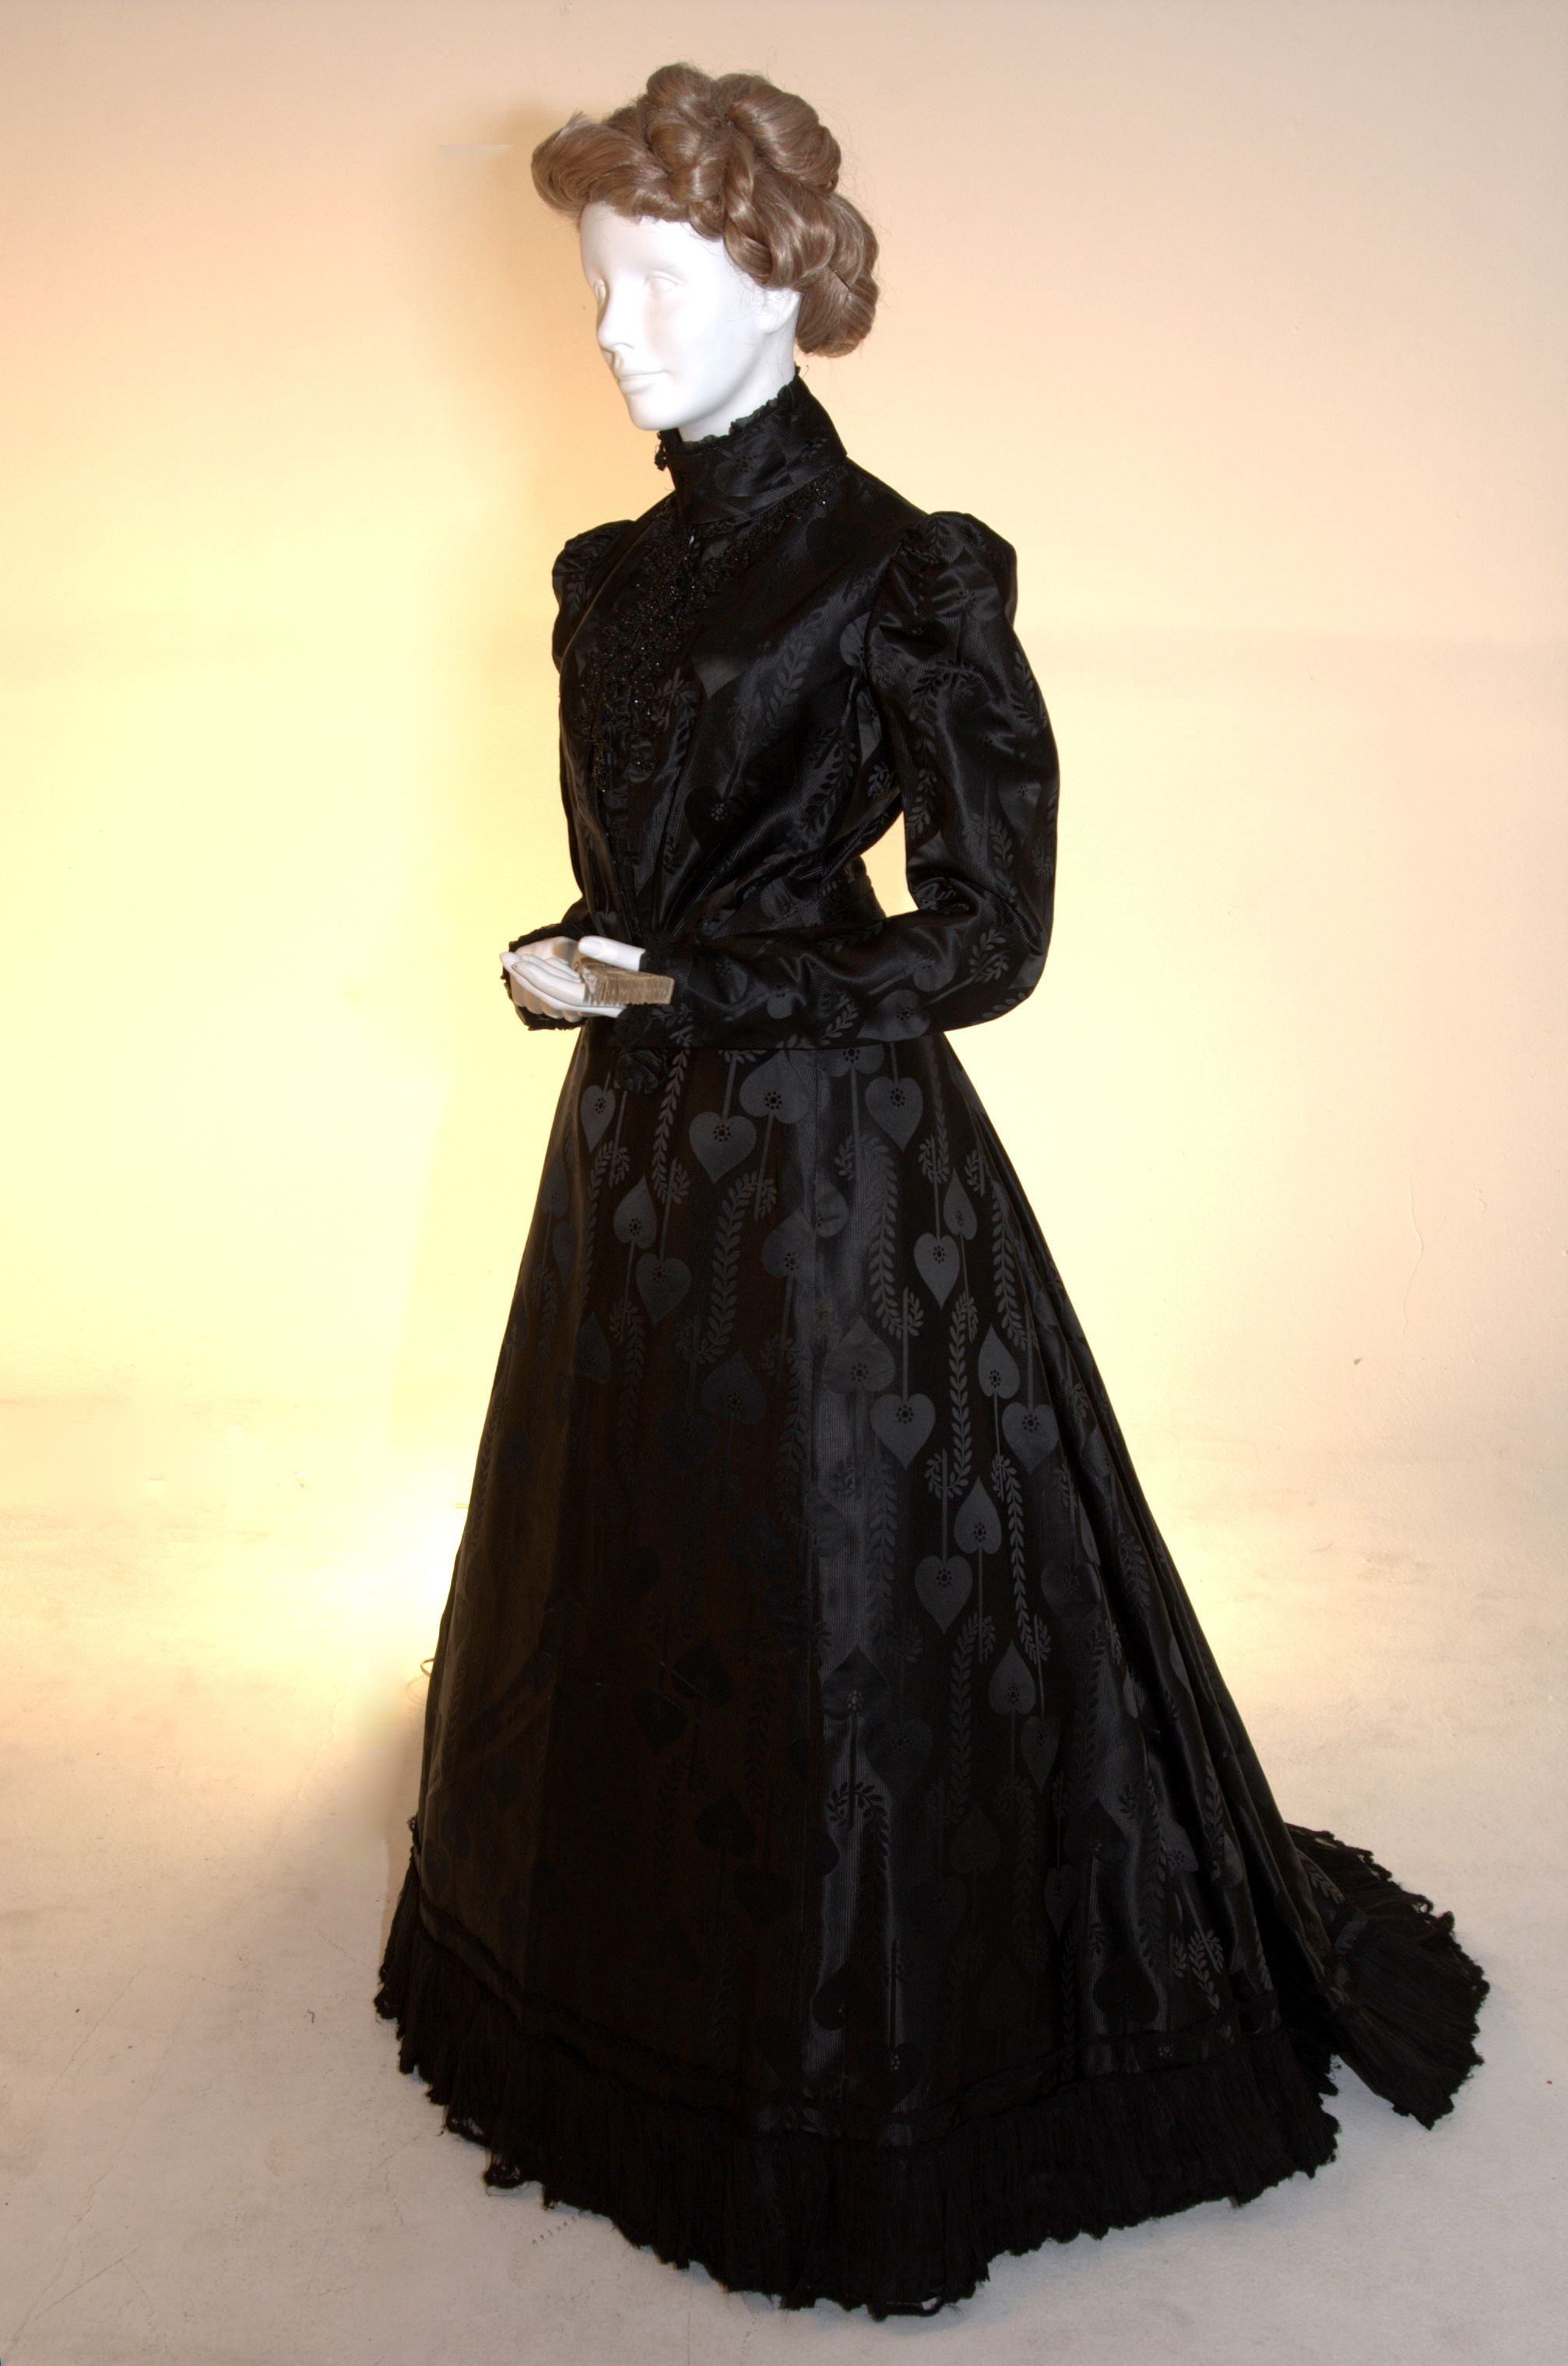 C 1900 Mourning Dress In Printed Silk Satin And Applications Organdy Edwardian Gowns Victorian Fashion Historical Dresses [ 3039 x 2014 Pixel ]